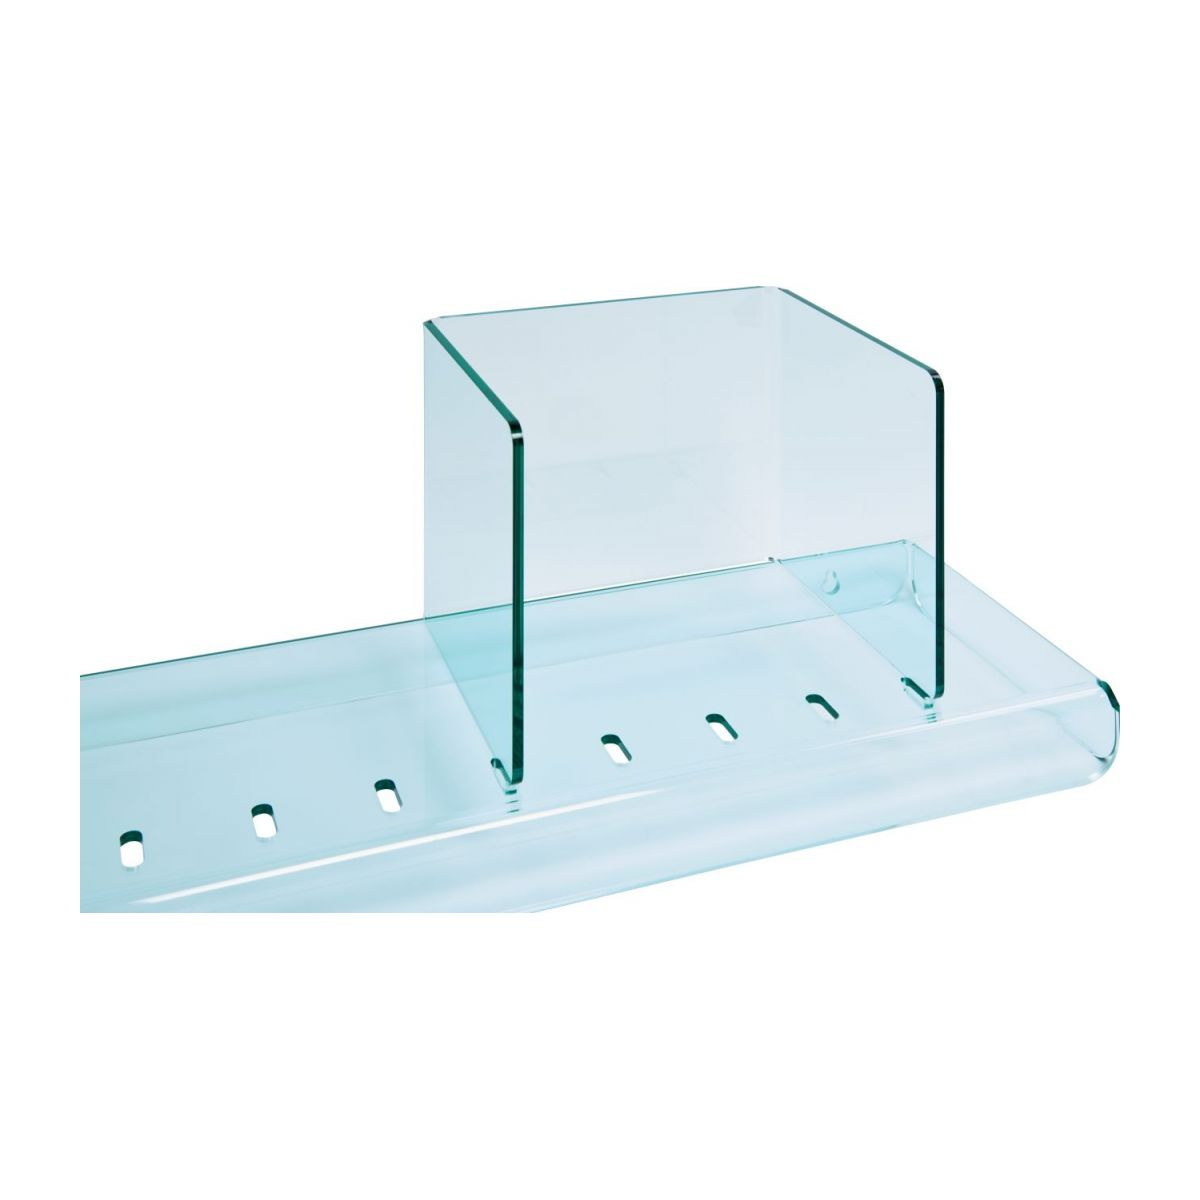 Shelf made of acrylic, transparent n°4